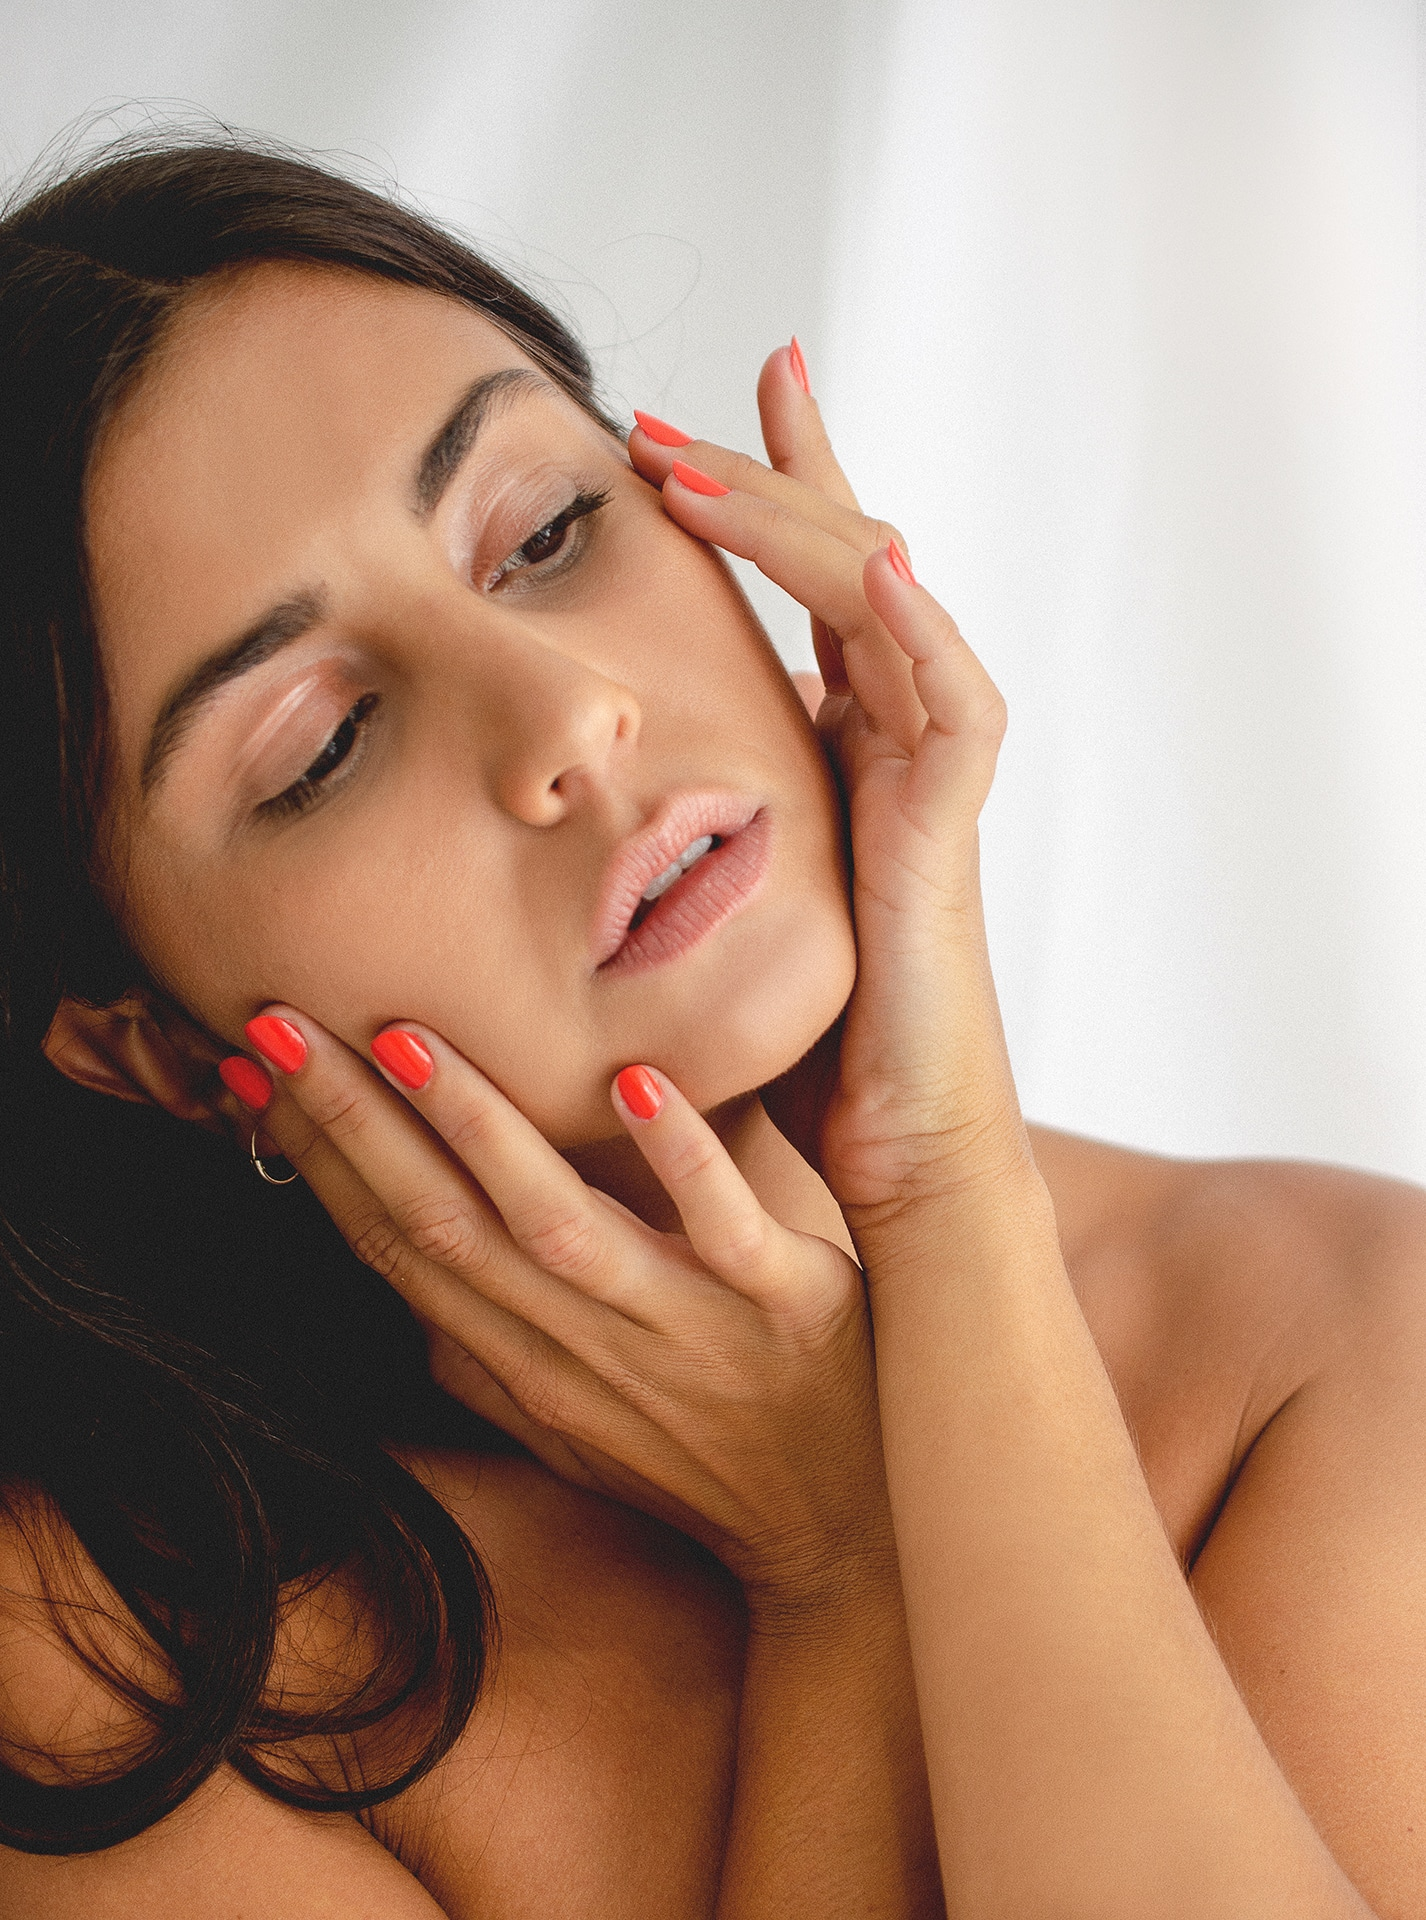 olive skin model holding her hand to her face wearing red nail polish by sienna